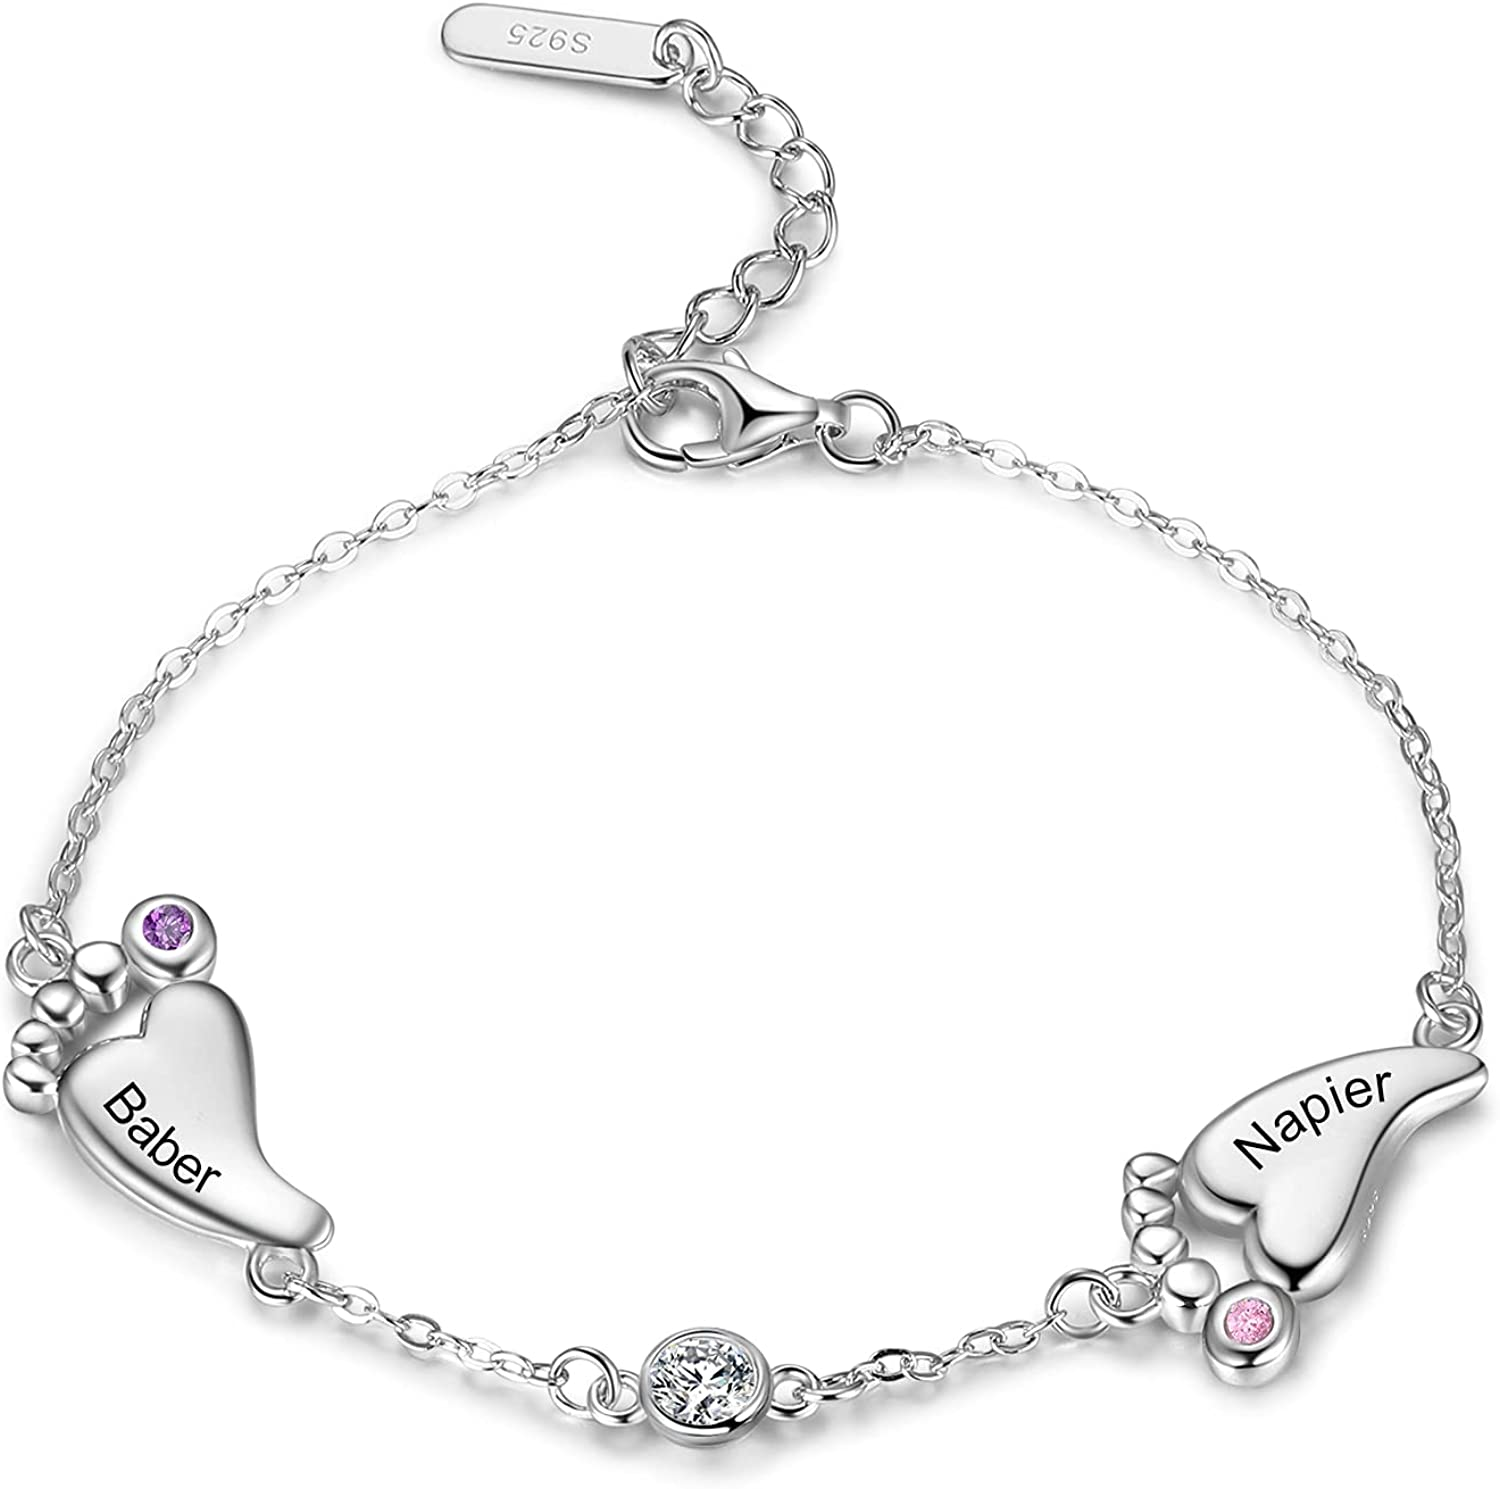 Personalized S925 Mother Babyfeet Bracelets with Simulated Birth